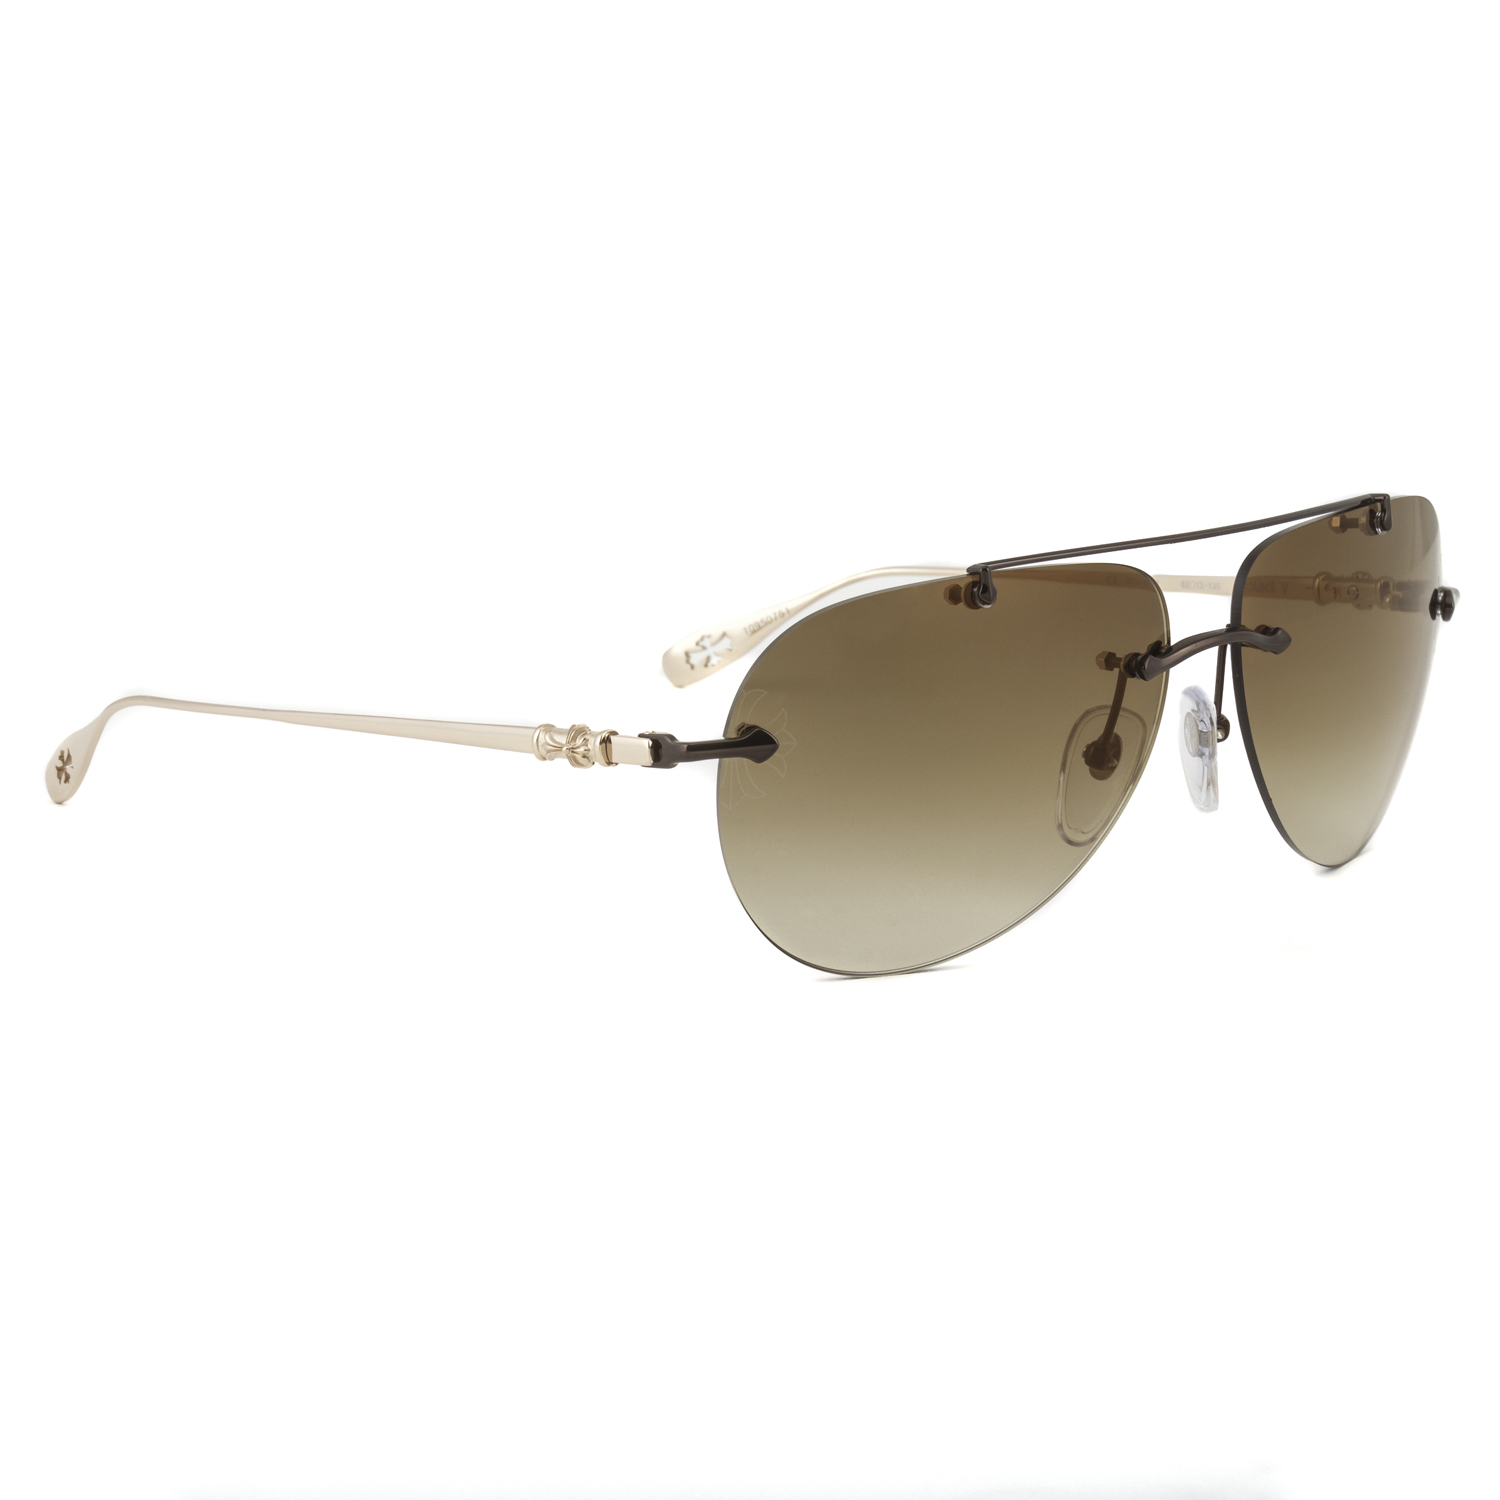 dfeed3f1a705 Chrome Hearts Stains V Sunglasses Shiny Chocolate Brown Gold Frame Gradient  Lens